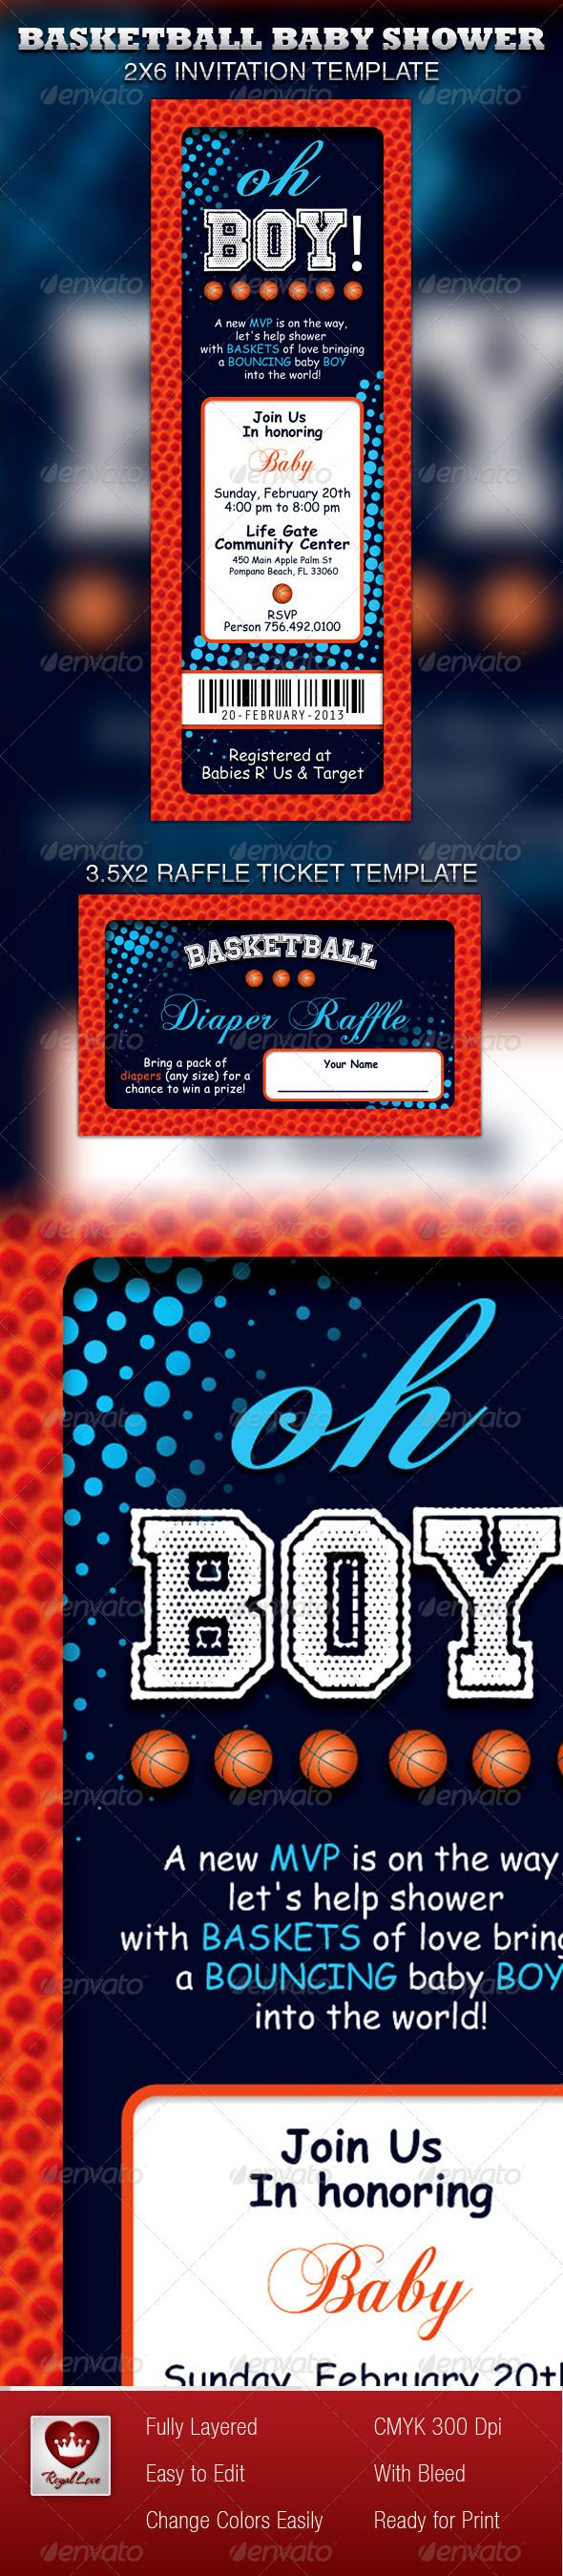 best images about ticket designs basketball baby basketball baby shower invitation raffle ticket